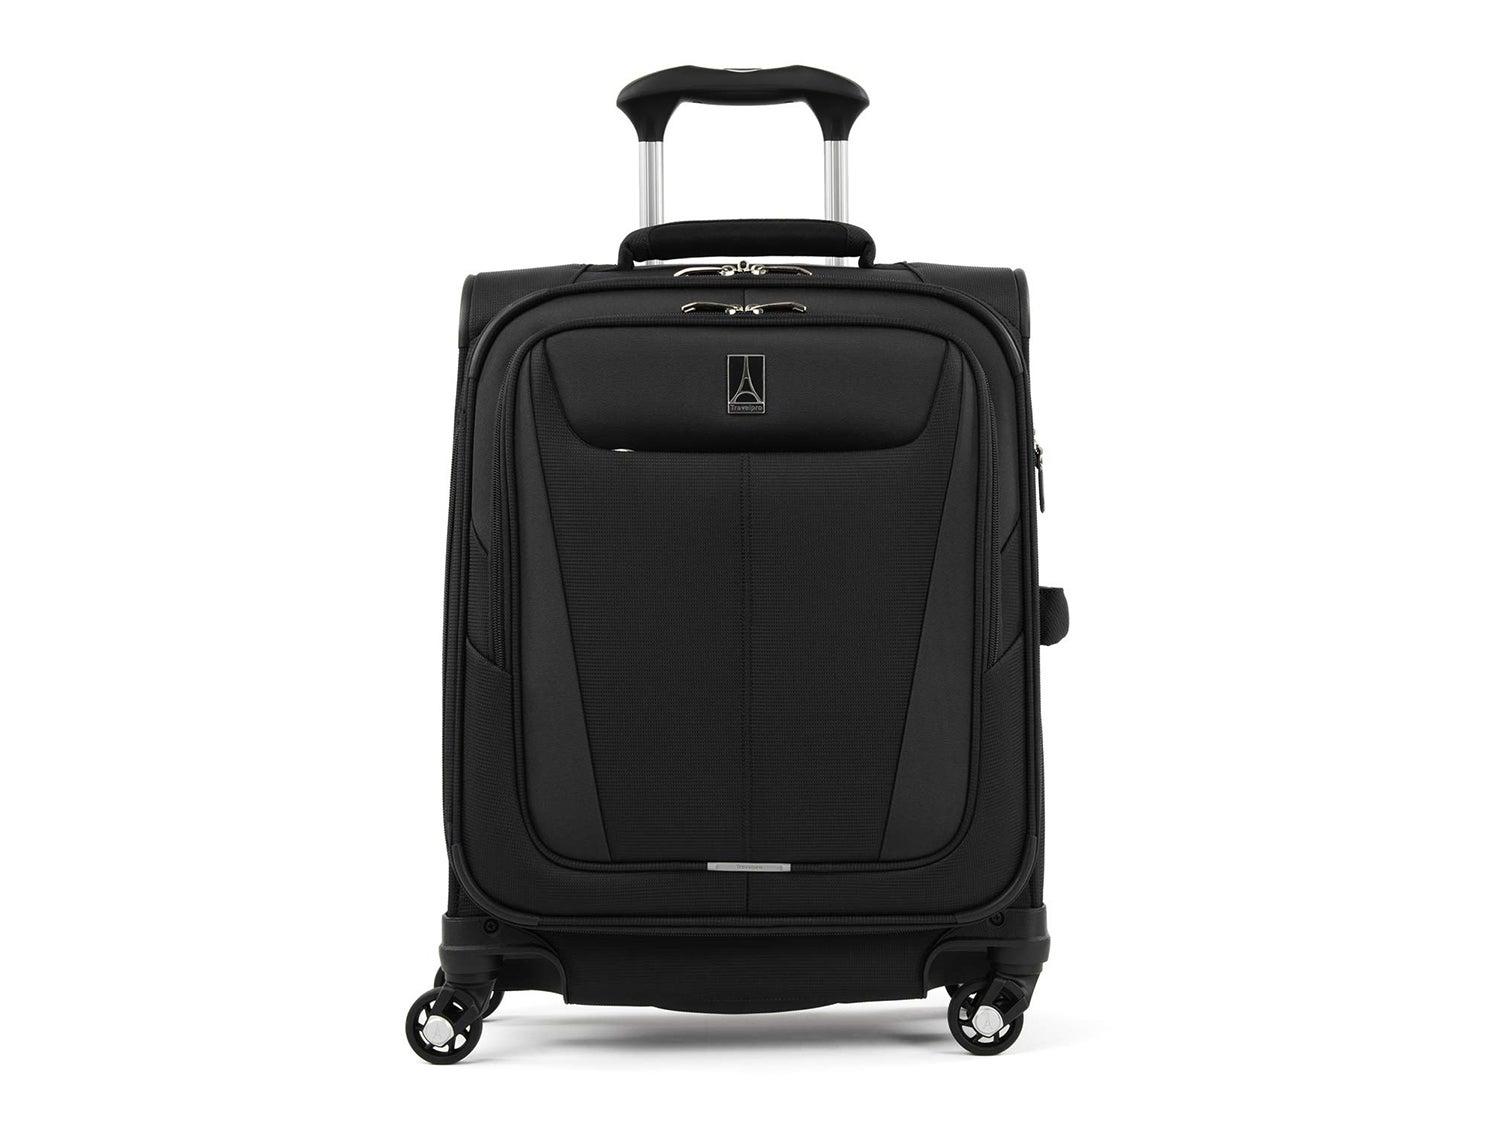 Travelpro Luggage International Carry-on